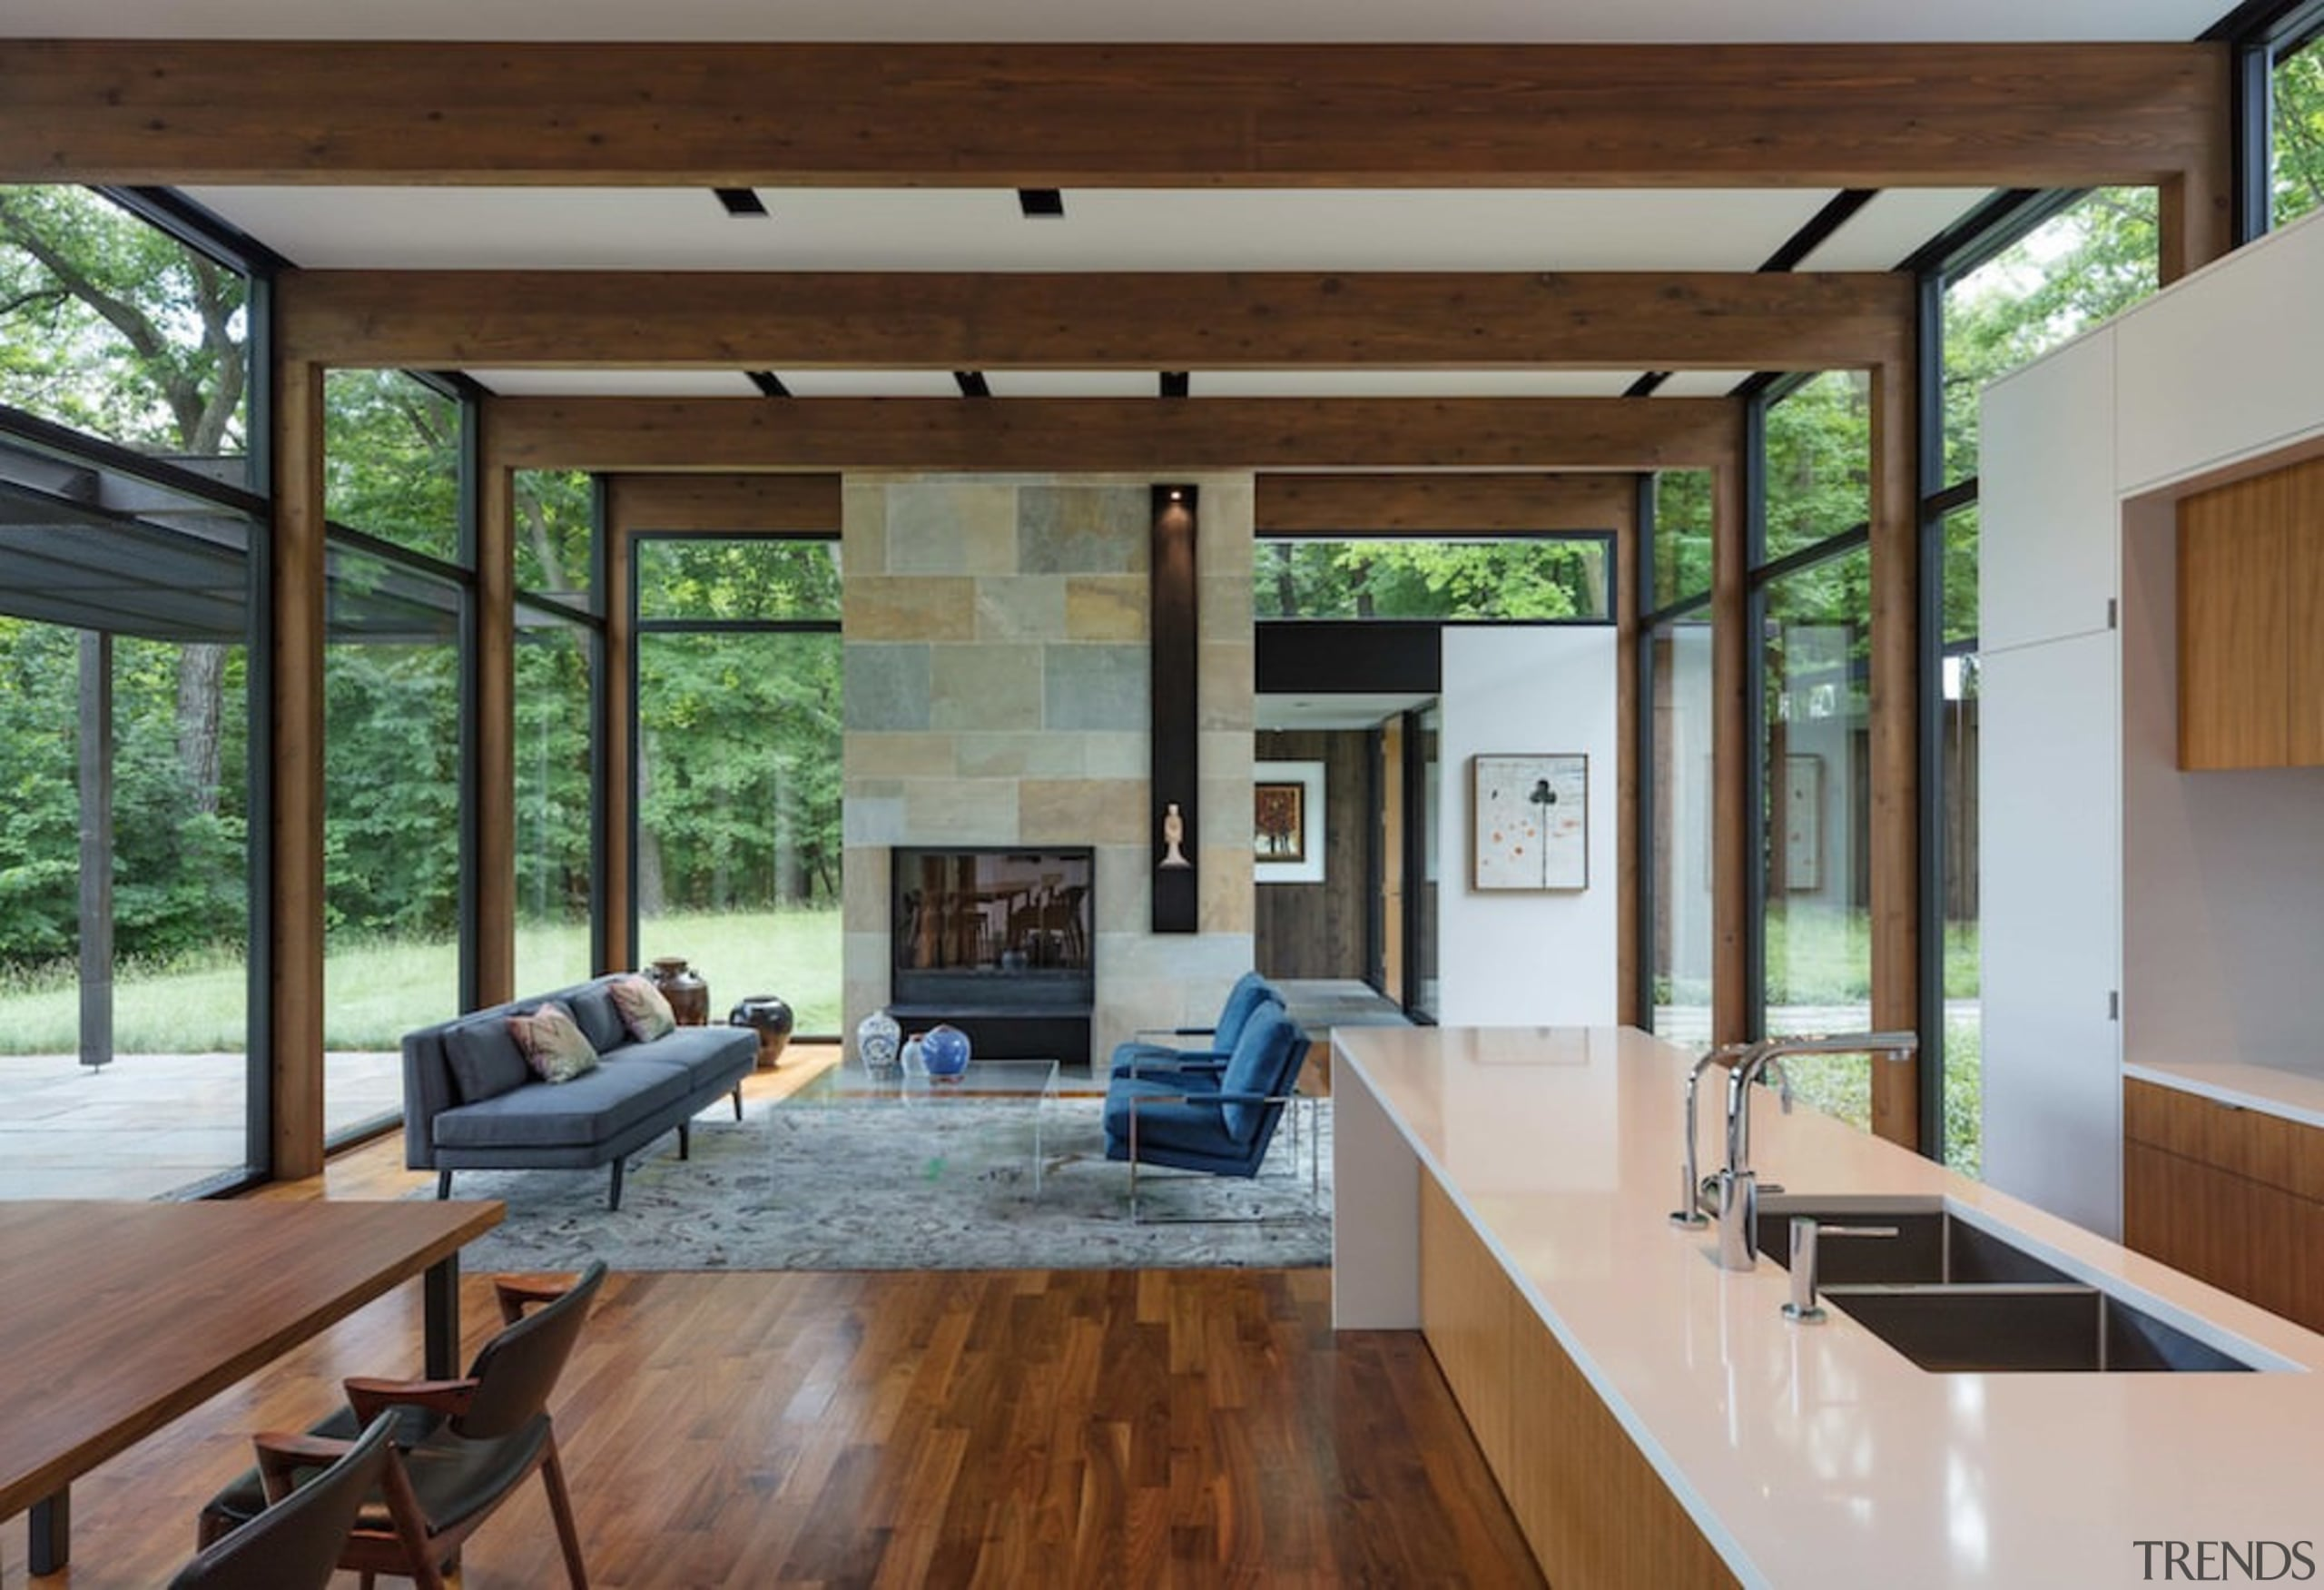 Clerestory windows ring this living area - Clerestory ceiling, house, interior design, living room, real estate, window, wood, gray, brown